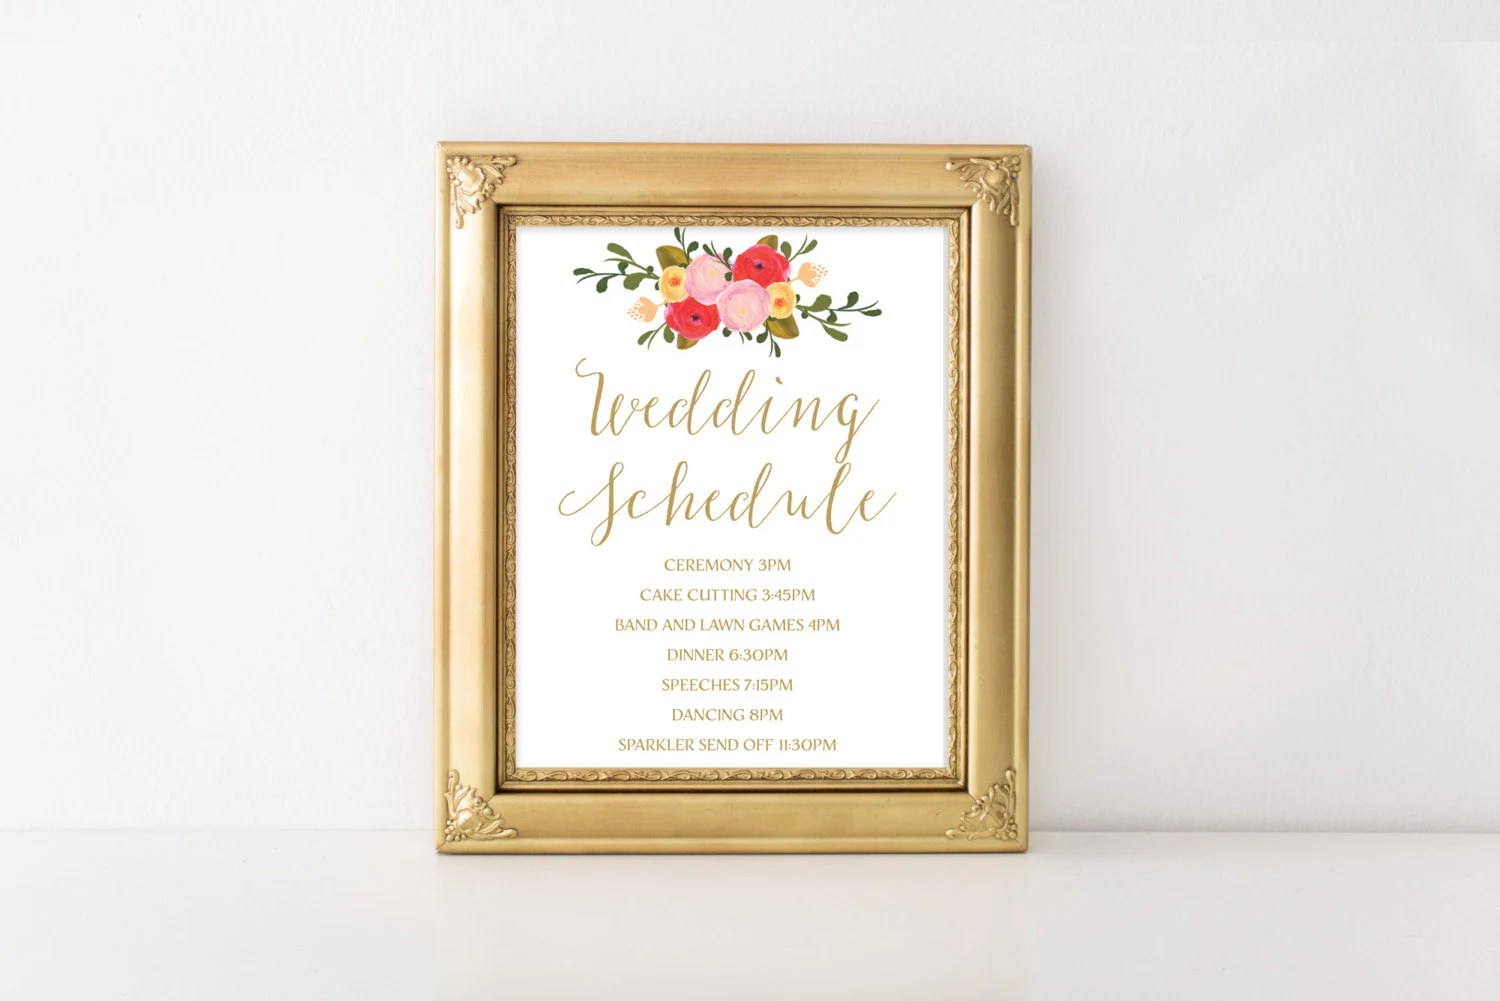 Wedding Schedule Design towelbars